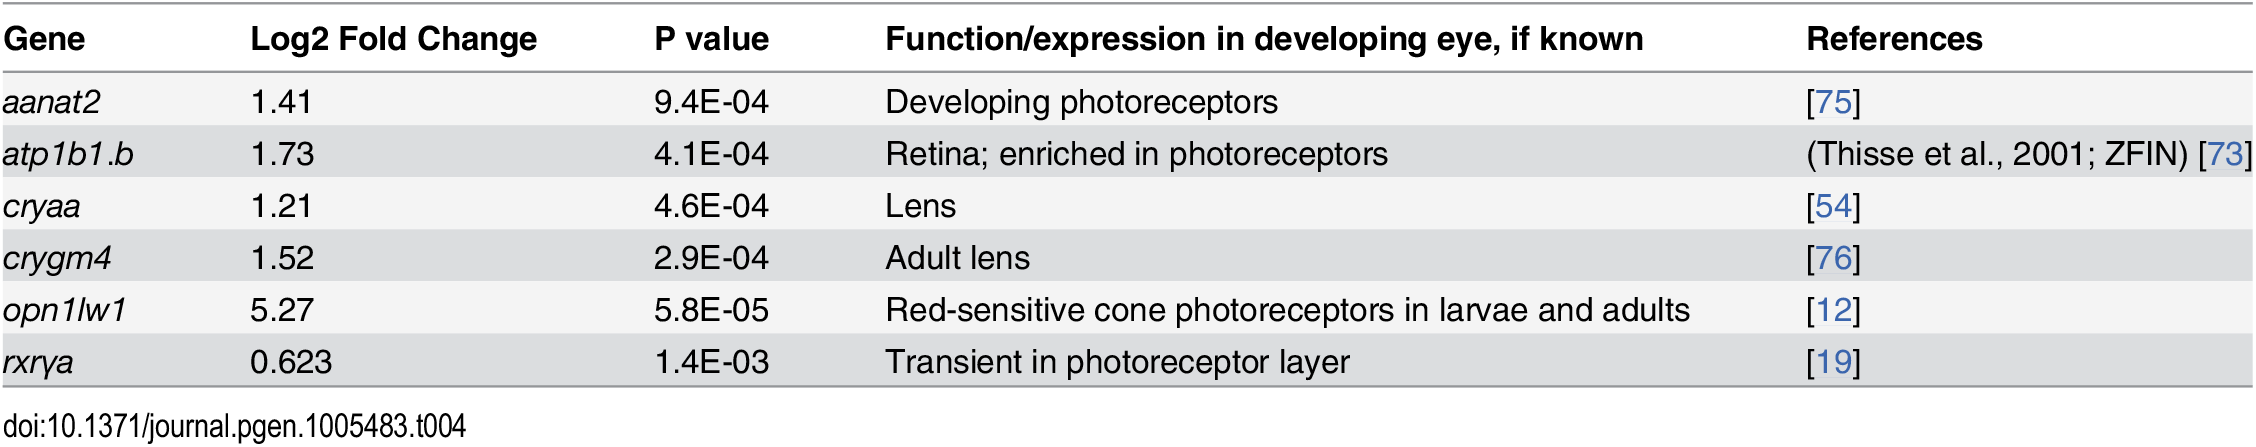 Differential expression of eye and photoreceptor genes in eyes of embryonic zebrafish treated with RA.